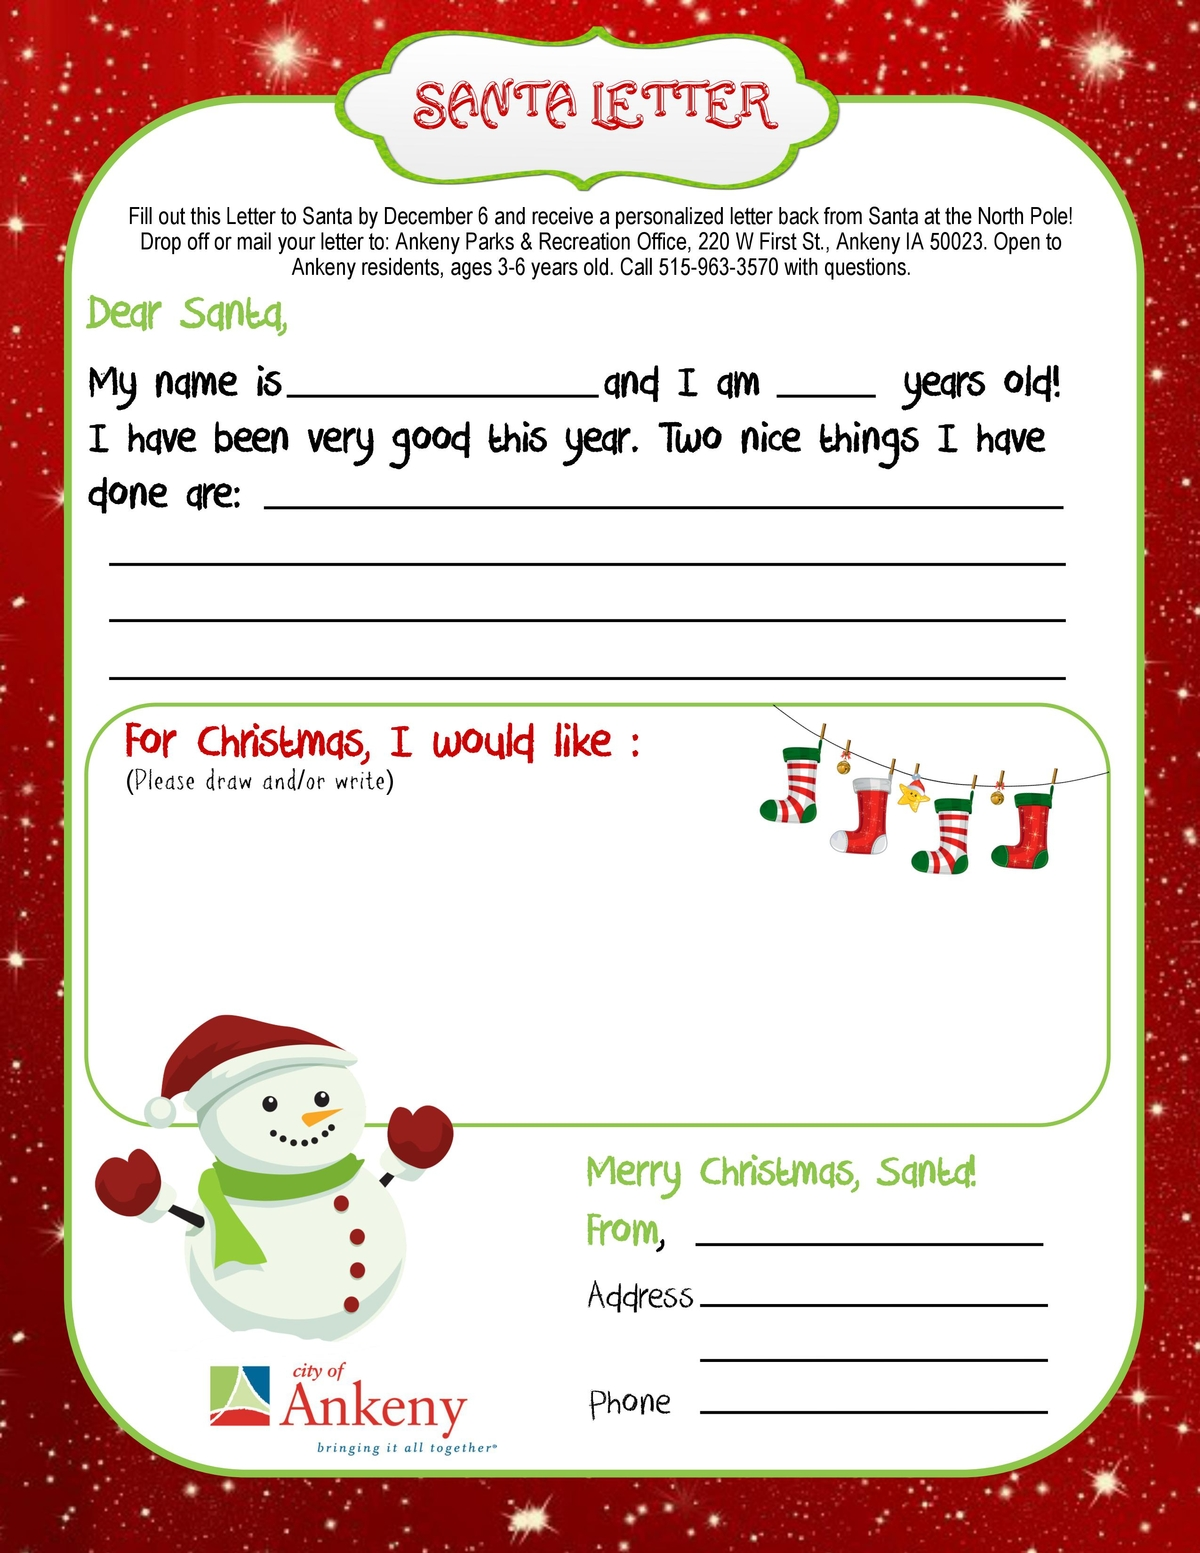 Ankeny Kids Can Get A Letter From Santa  Ankeny Ia Patch